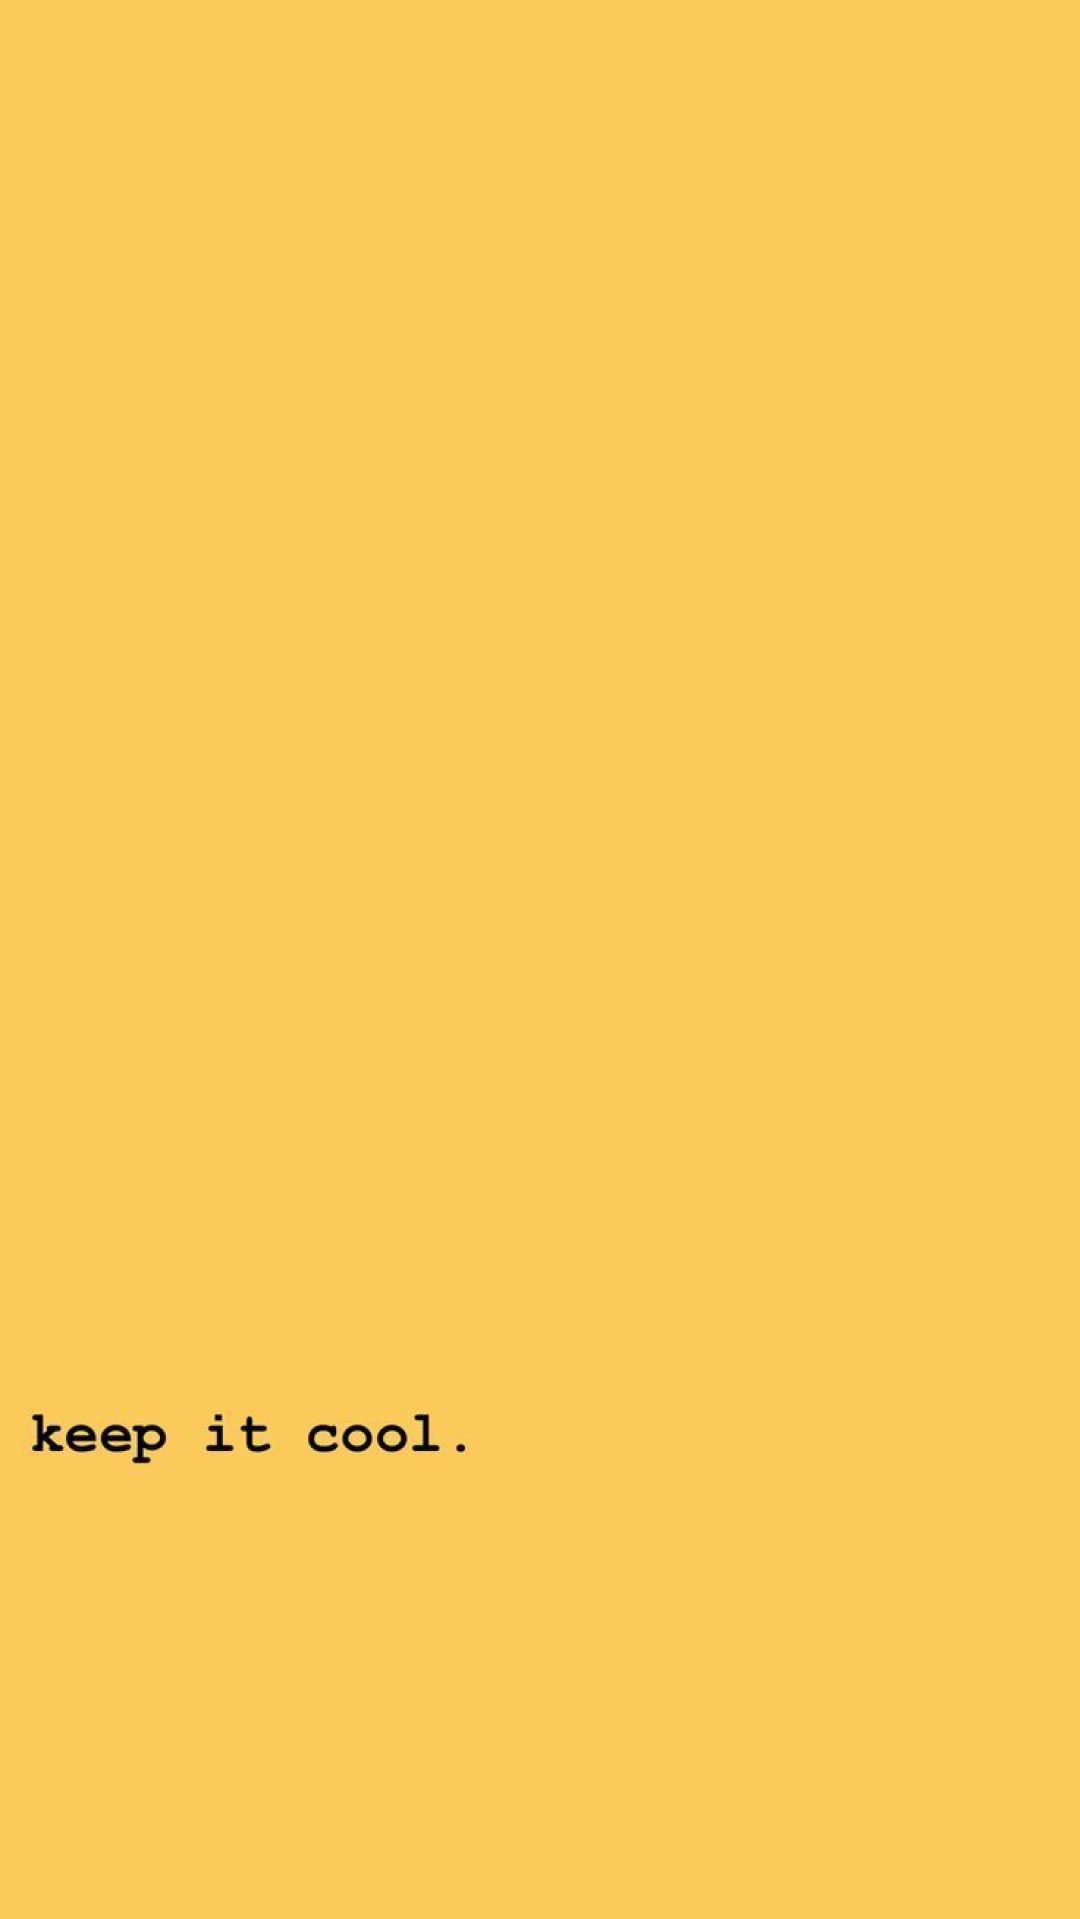 150 Yellow Aesthetic Tumblr Android Iphone Desktop Hd Backgrounds Wallpapers 1080p 4k 1080x1919 2020